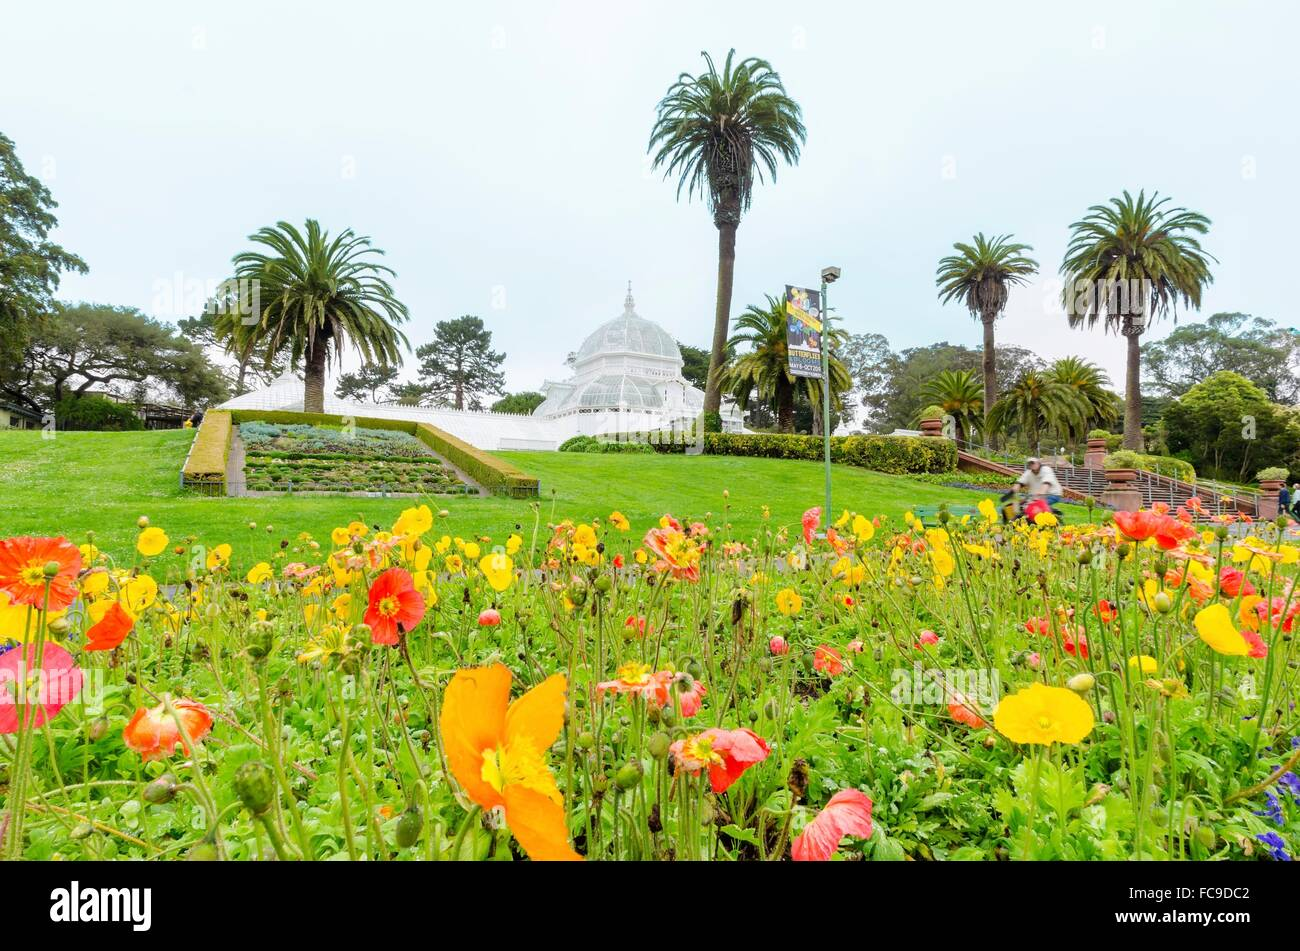 The Garden Of The Conservatory Of Flowers In San Francisco, California,  United States Of America. A Greenhouse, Botanical Garden